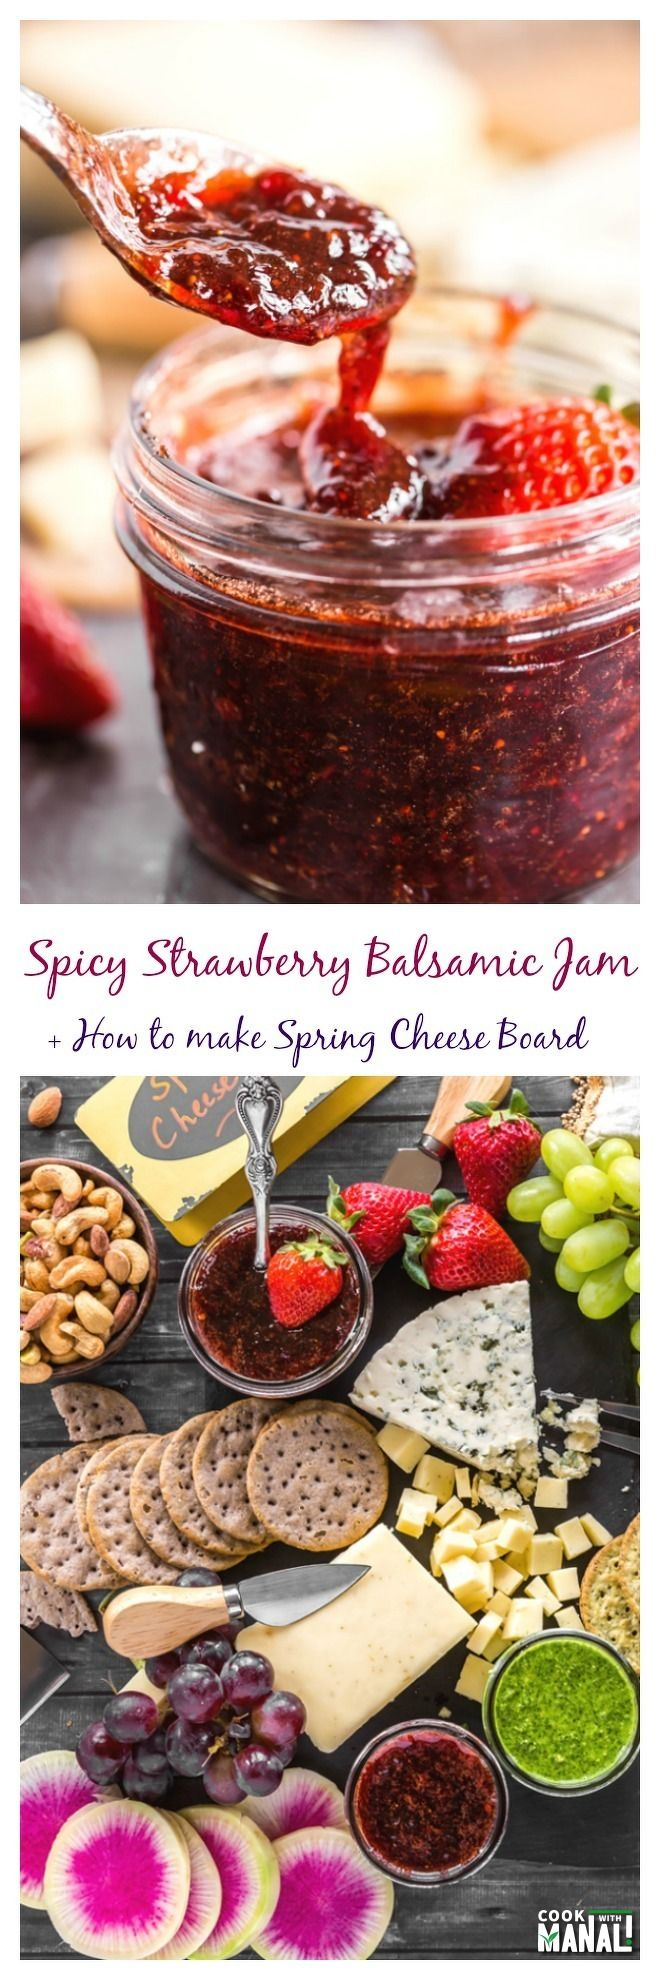 Spicy Satrwberry Balsamic Jam Collage